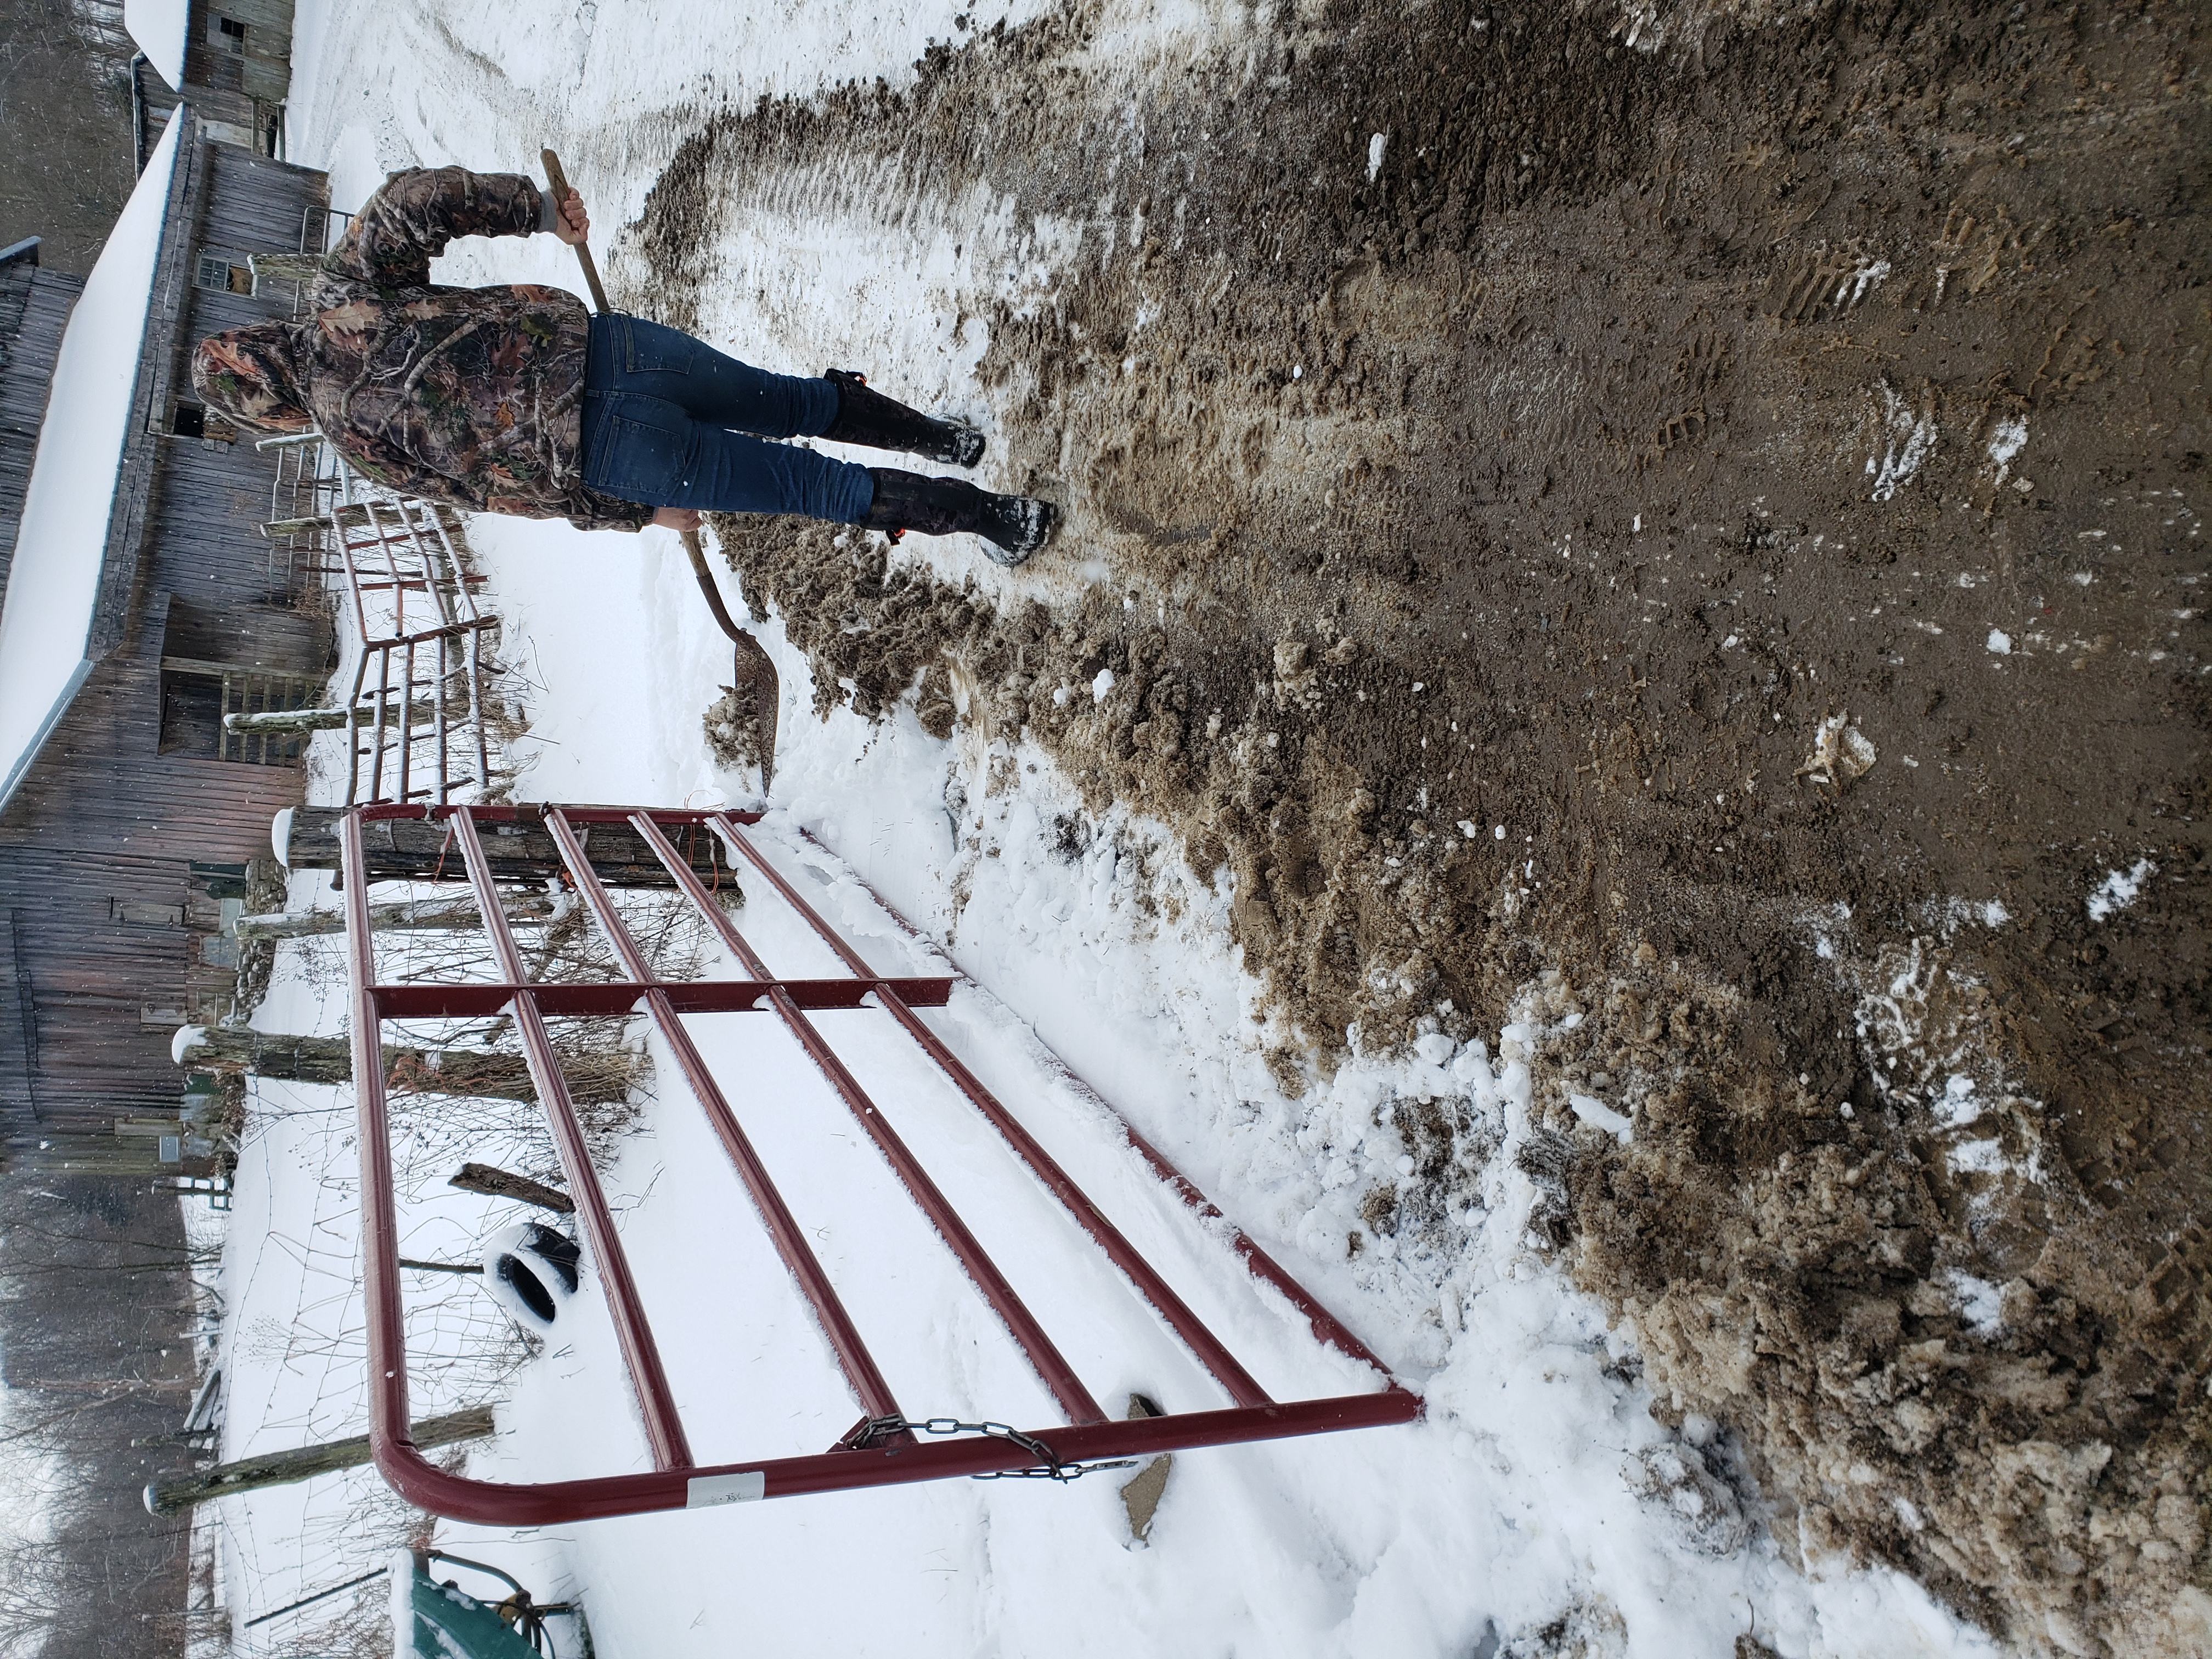 Student clears snow from pathway to barn.